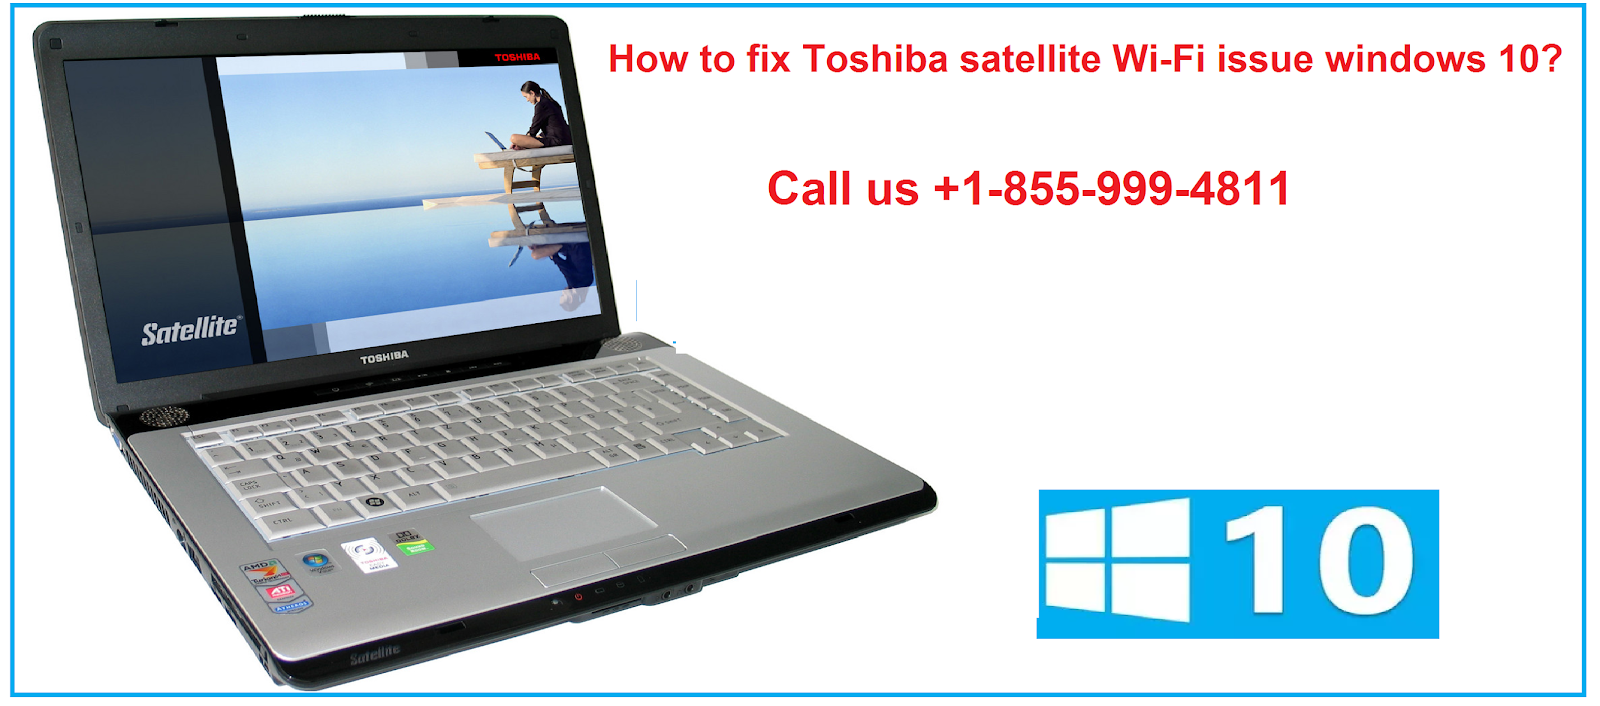 This mistake may make you pull your hair  Toshiba support is